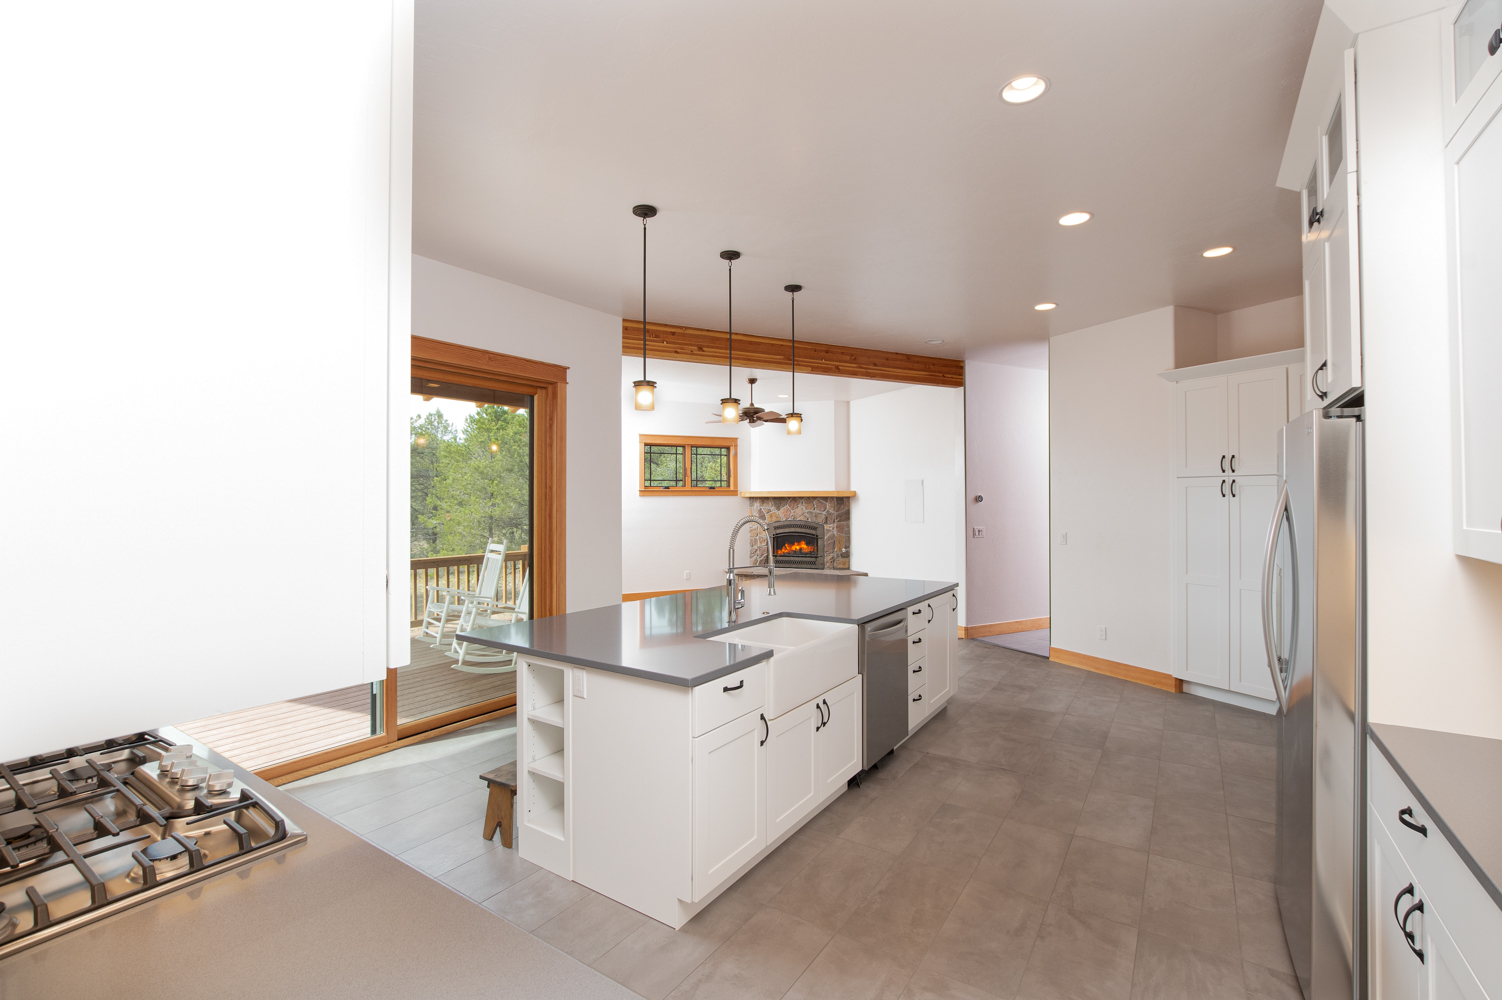 New Home Build in Montrose CO